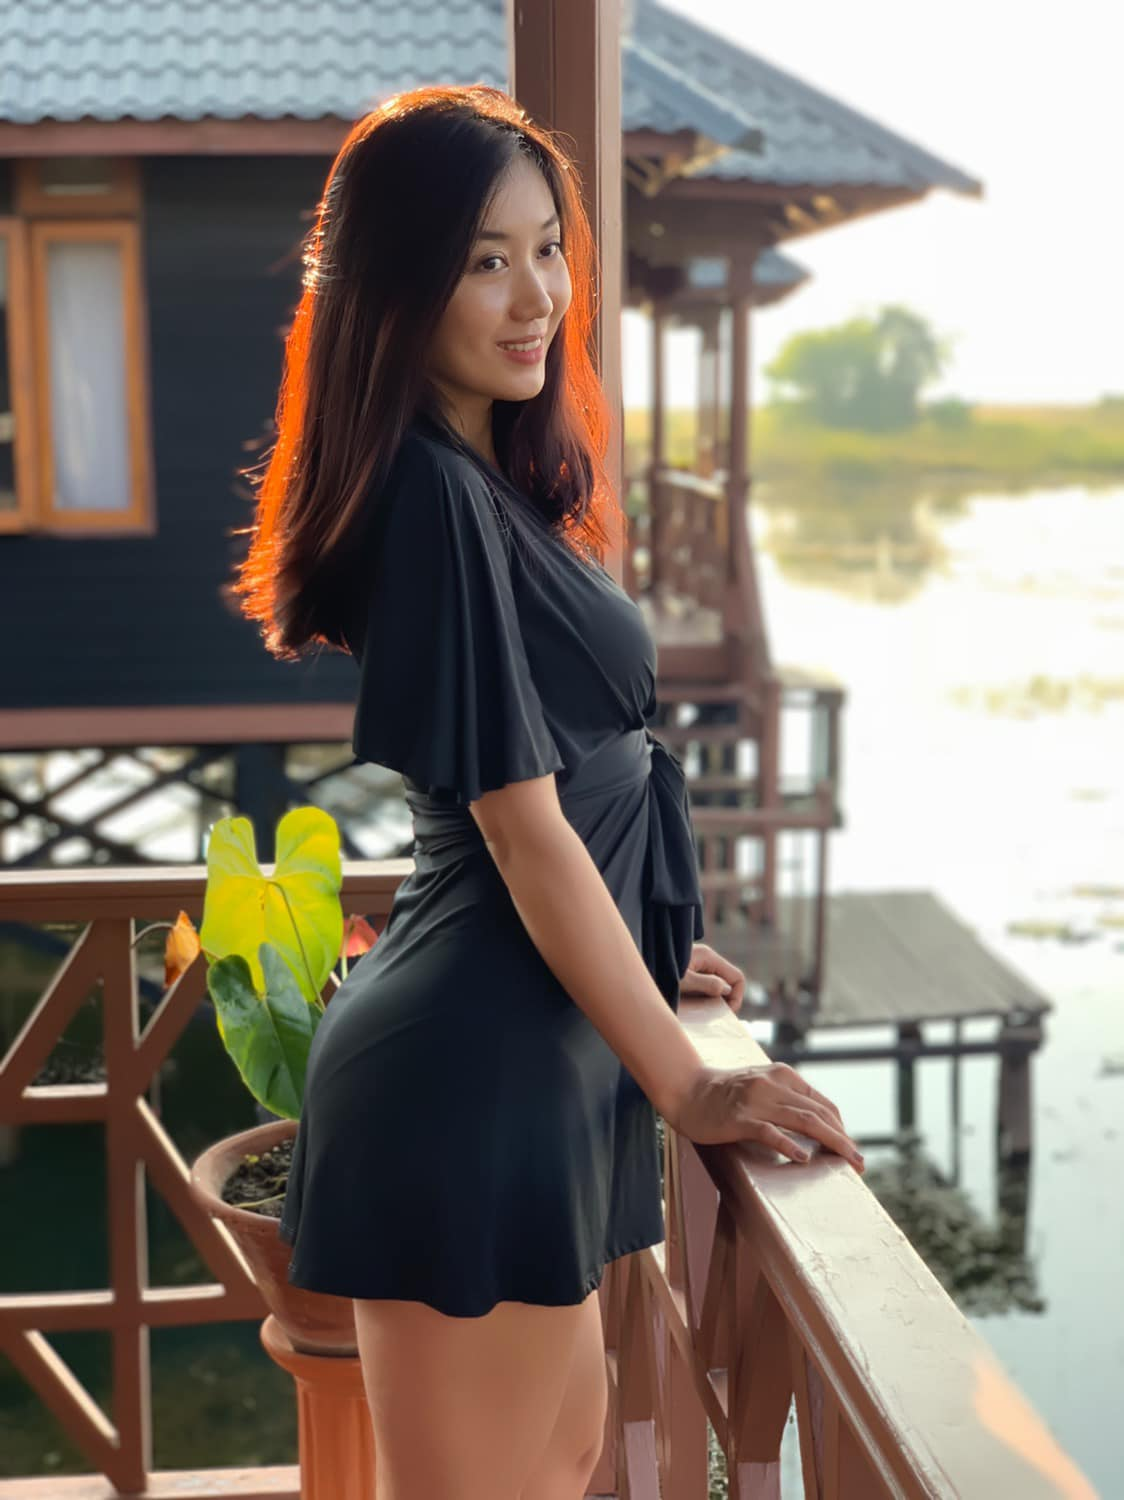 Lu Lu Aung in Black Fashion Outfit